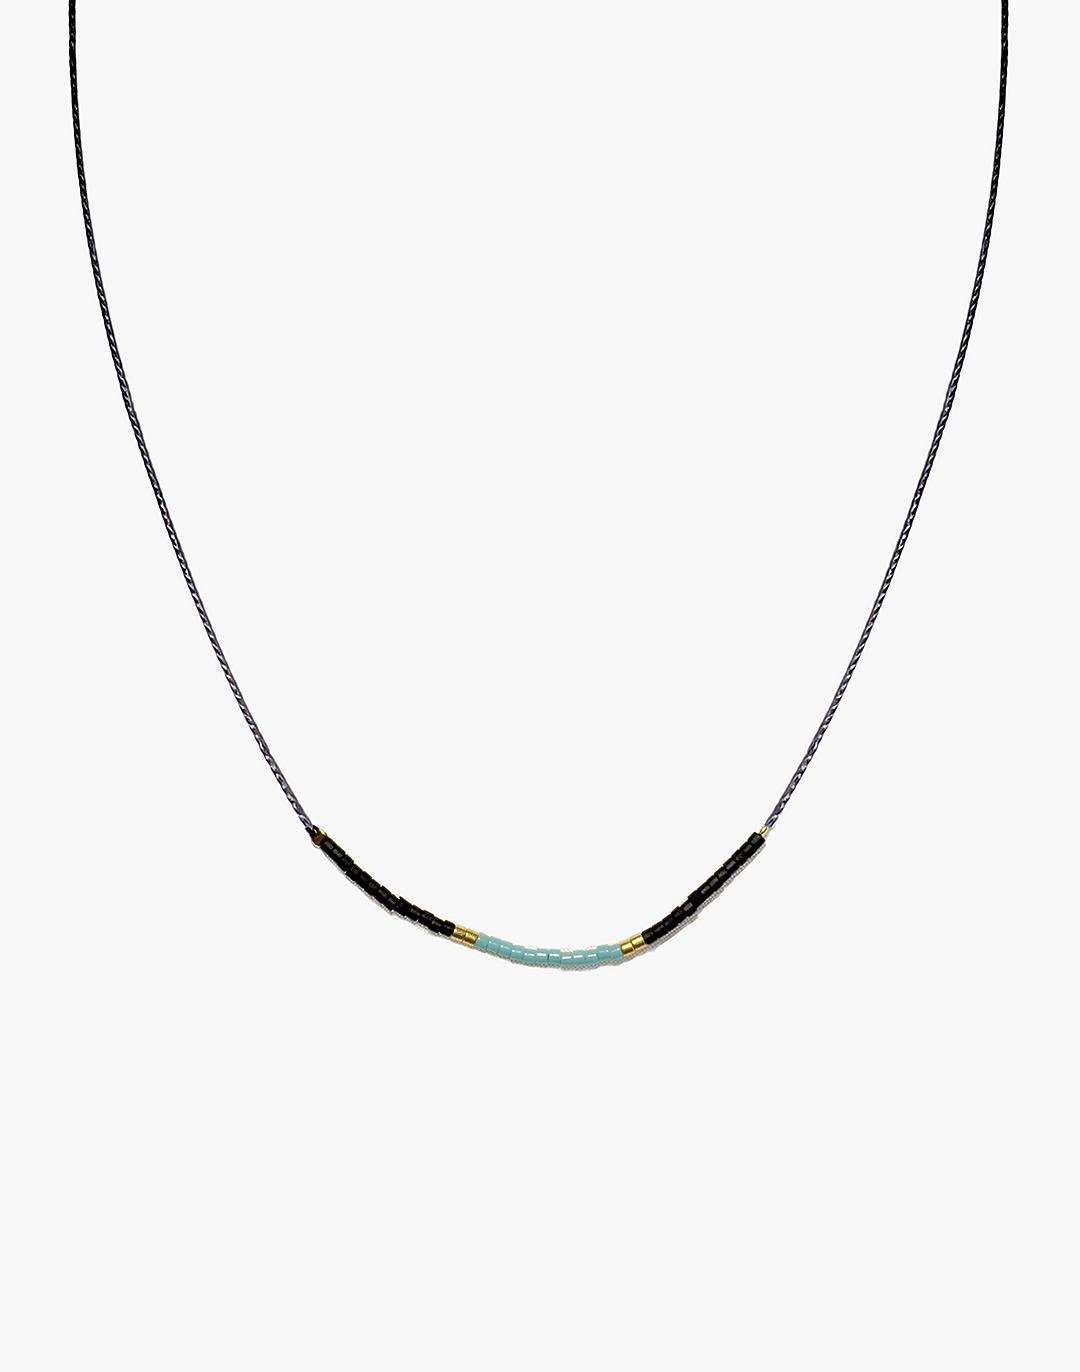 Cast of Stones Beaded Intention Necklace in Turquoise and Black